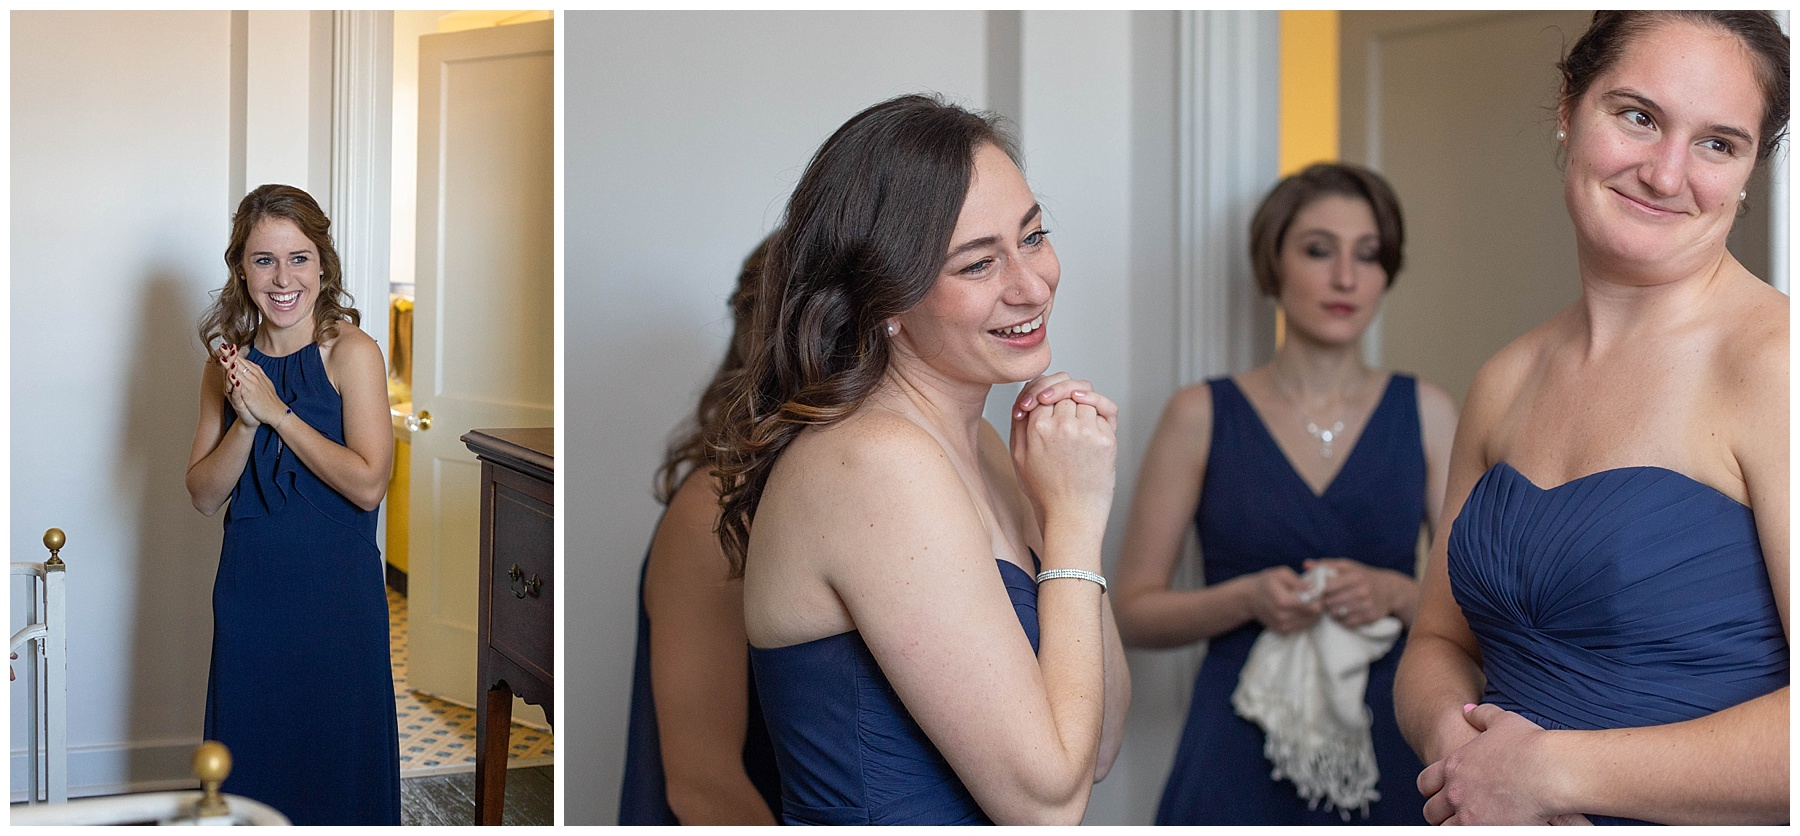 BEST REACTION EVER from Nicole's bridesmaids when they saw her all dressed up! <3